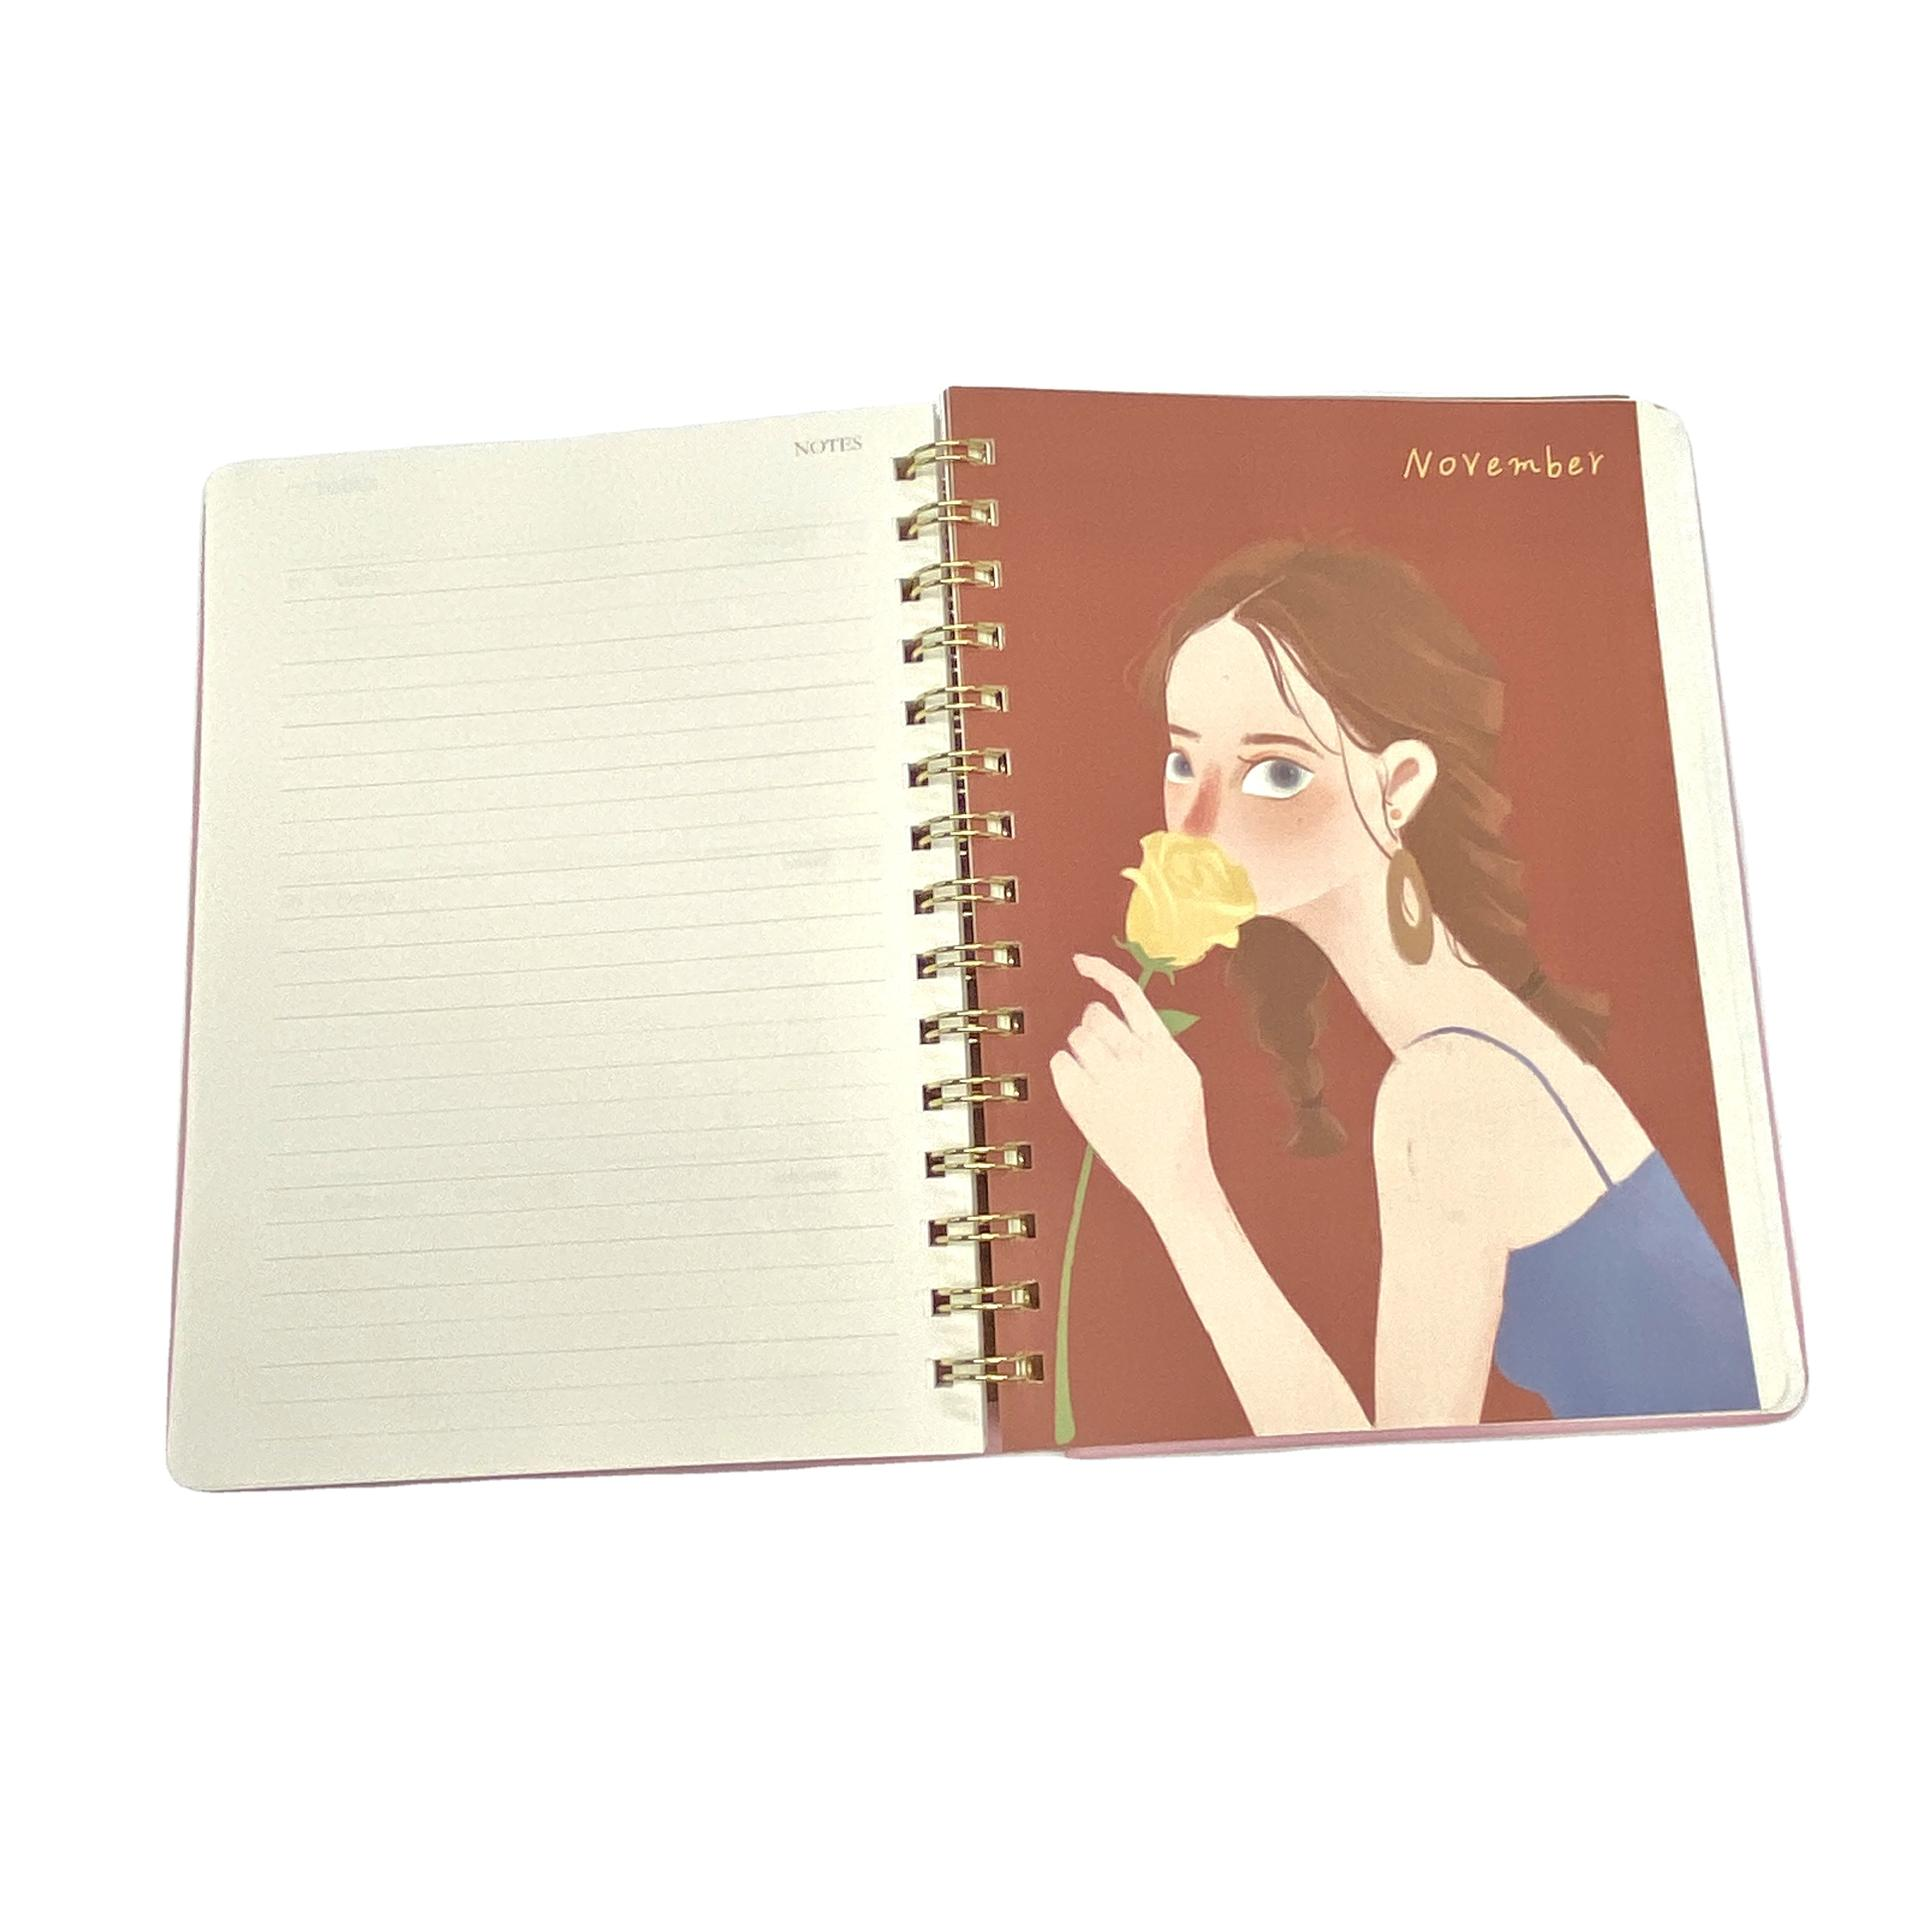 product-Dezheng-Original Linen Hardcover Recycled Notebook Spiral Planner Custom Printing-img-1